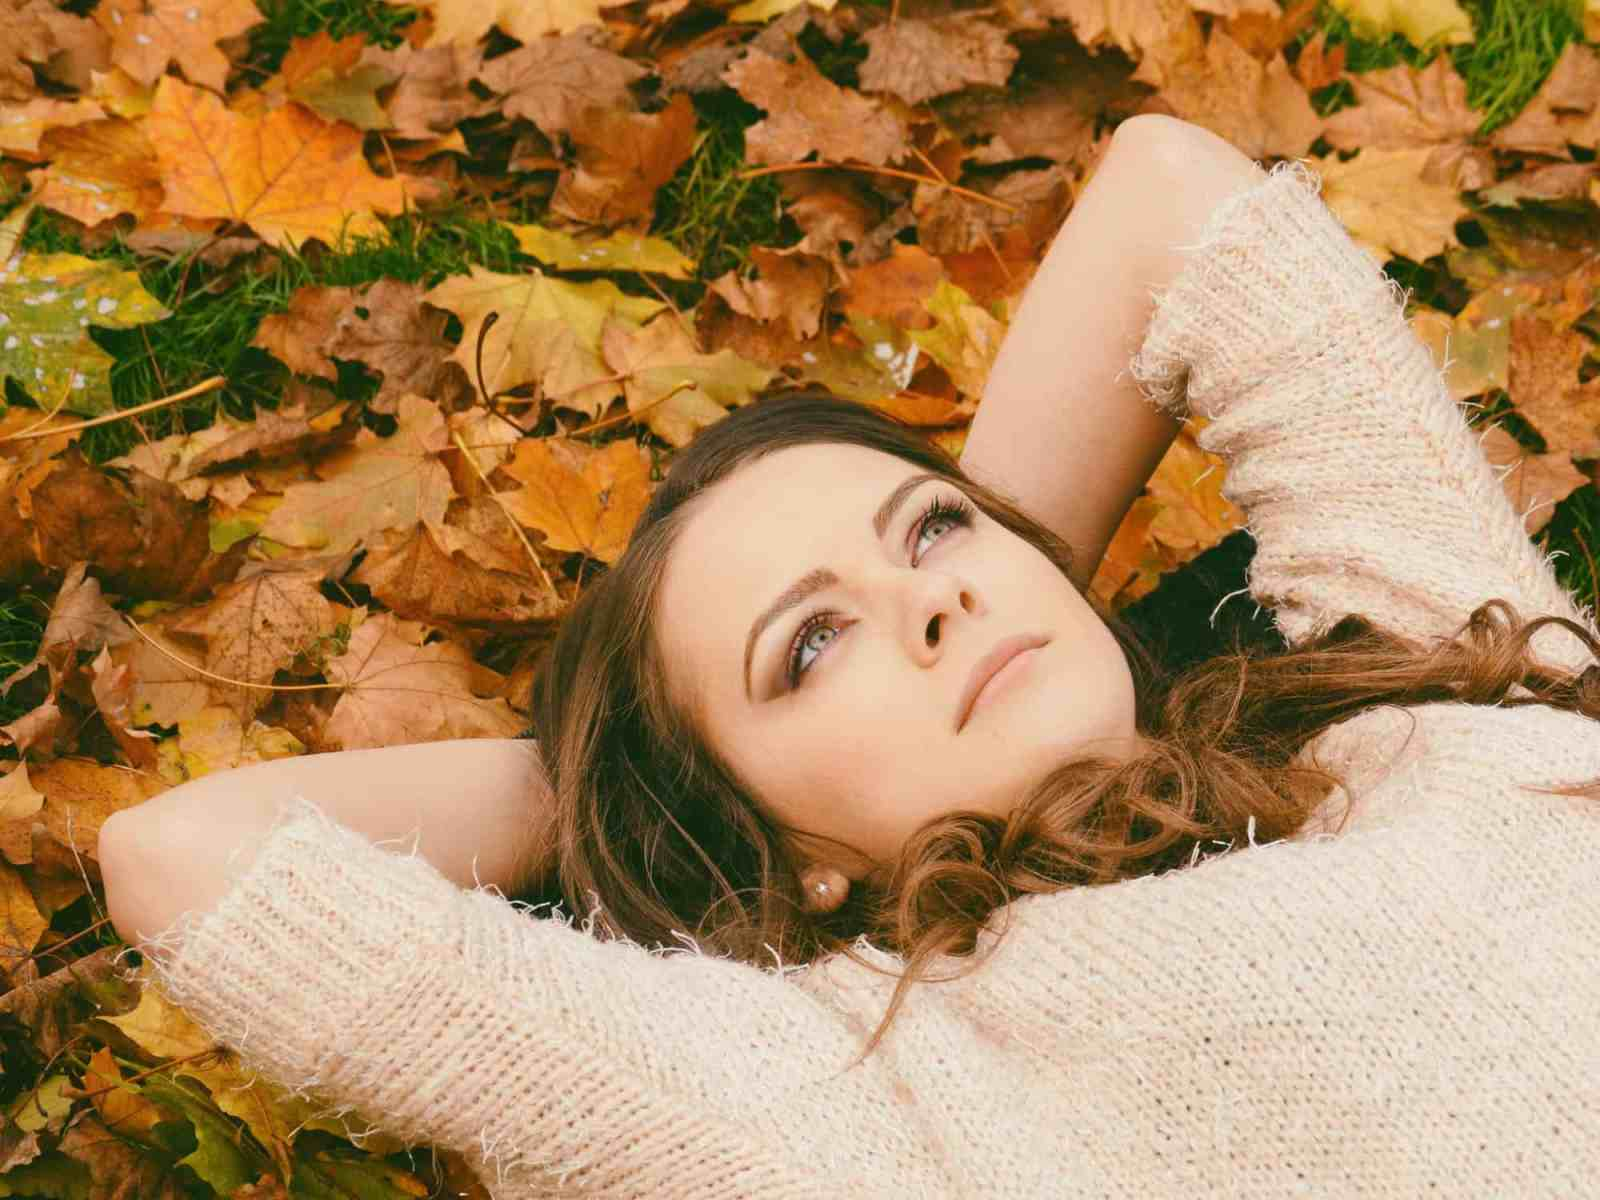 Autumn hair color trends can be seen all over the place, and we've put together a list of some of the best ones to have this fall!